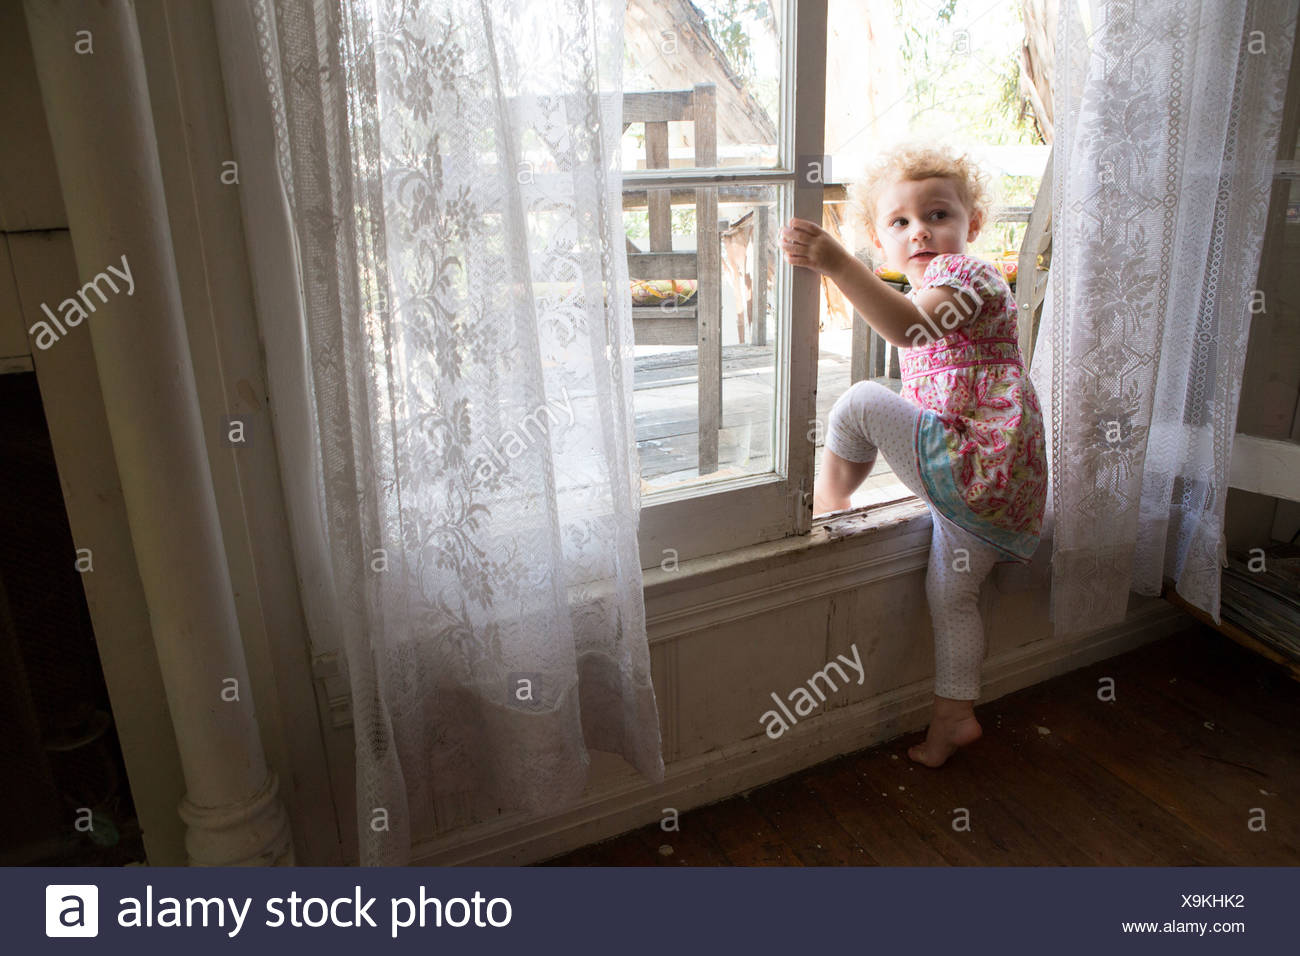 Child climbing over opened window - Stock Image